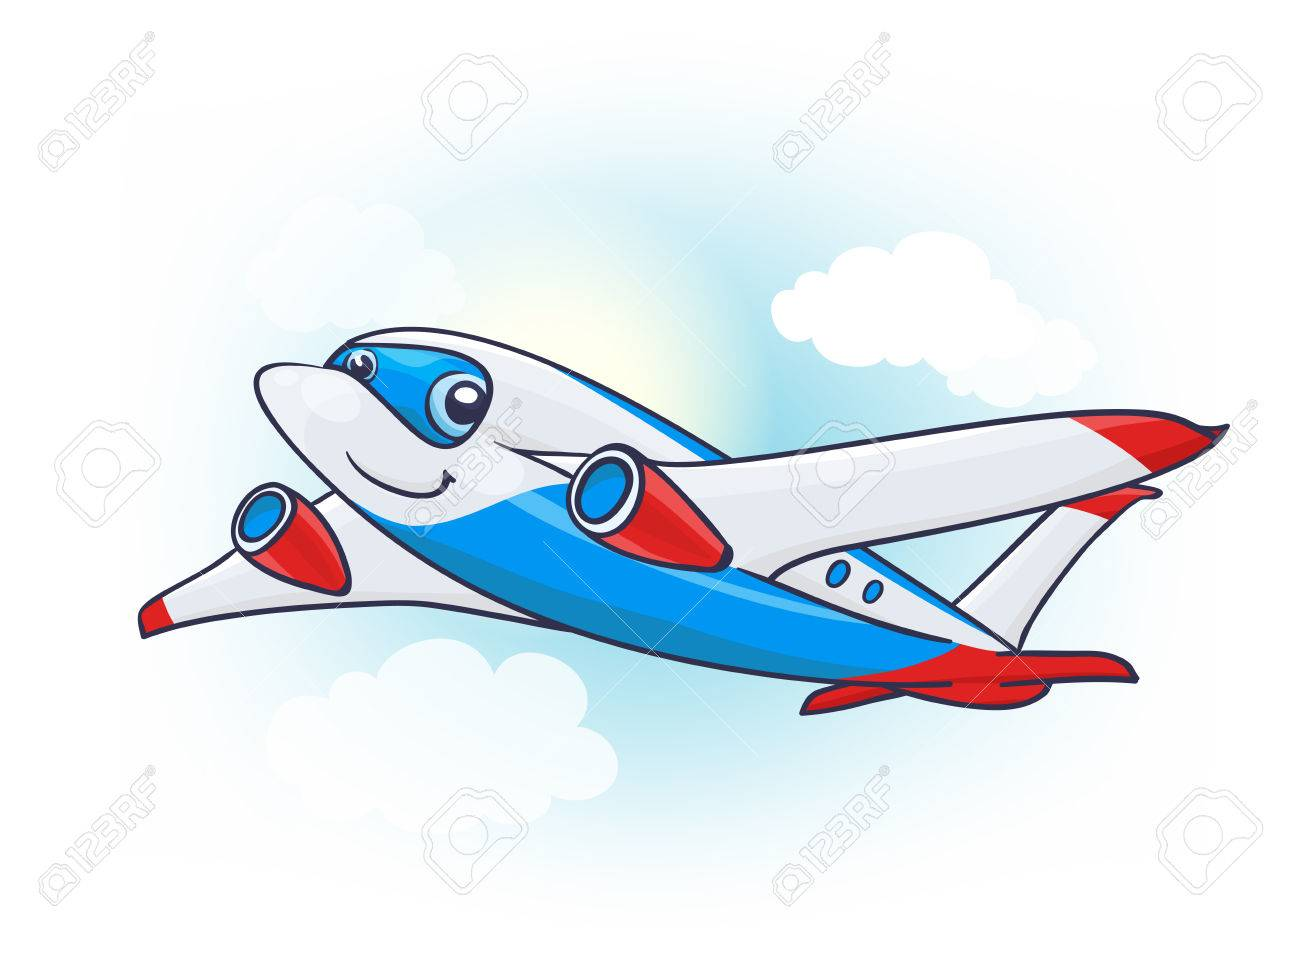 Cute Cartoon Plane Character In The Sky Vector Royalty Free